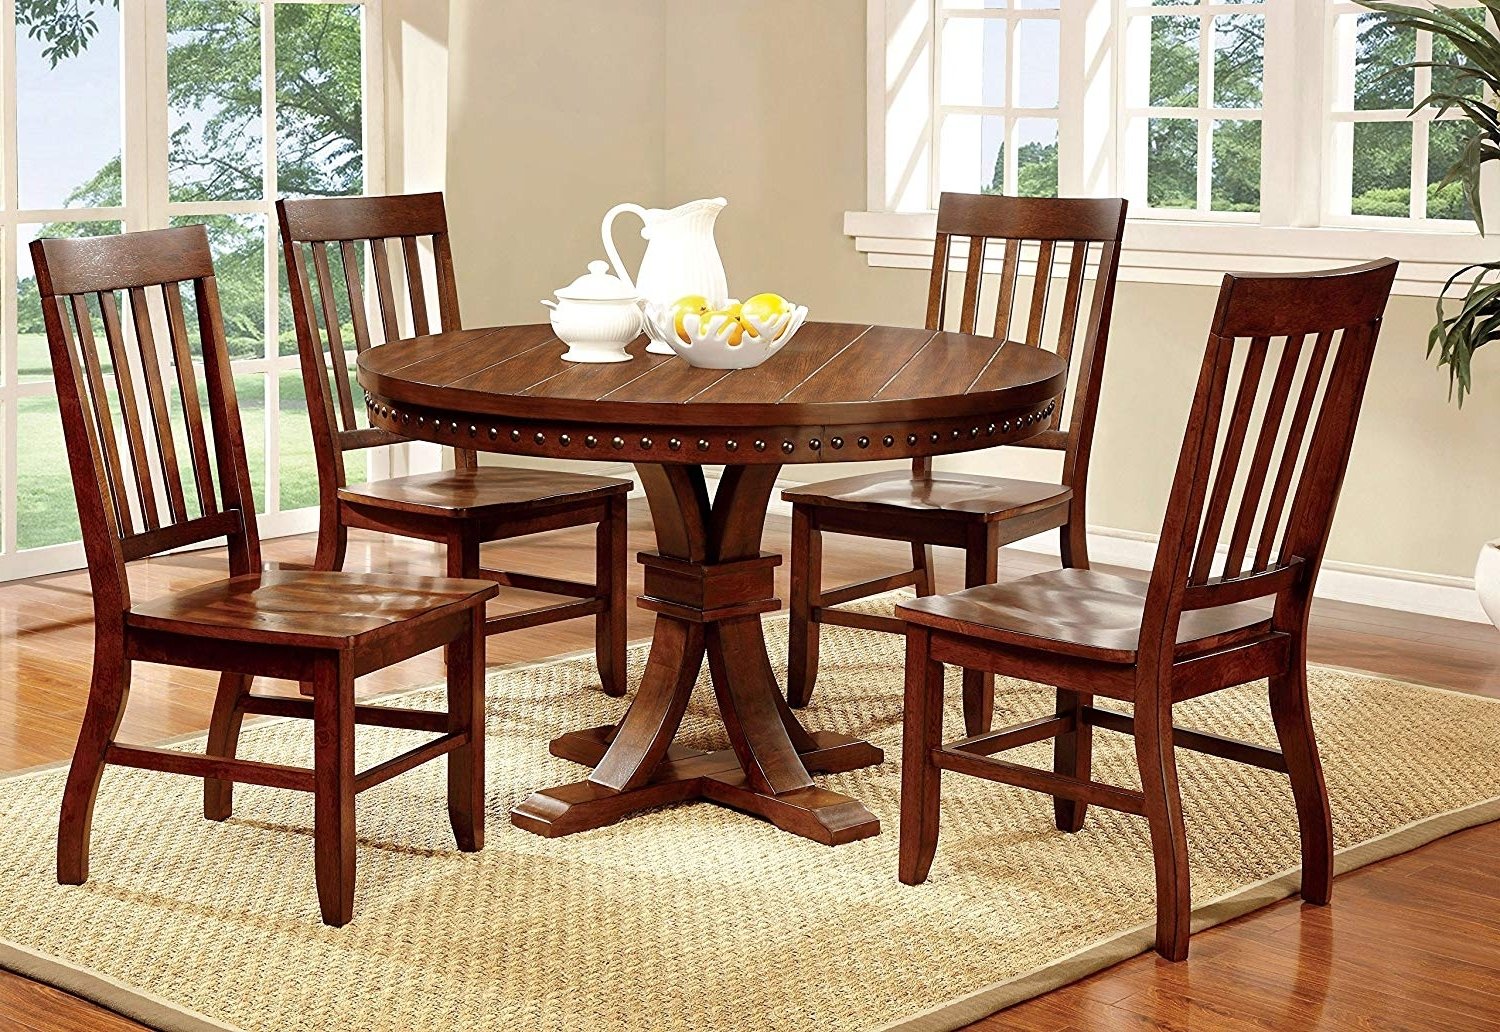 Cheap Dining Tables And Chairs With Regard To Most Current Amazon – Furniture Of America Castile 5 Piece Transitional Round (View 5 of 25)